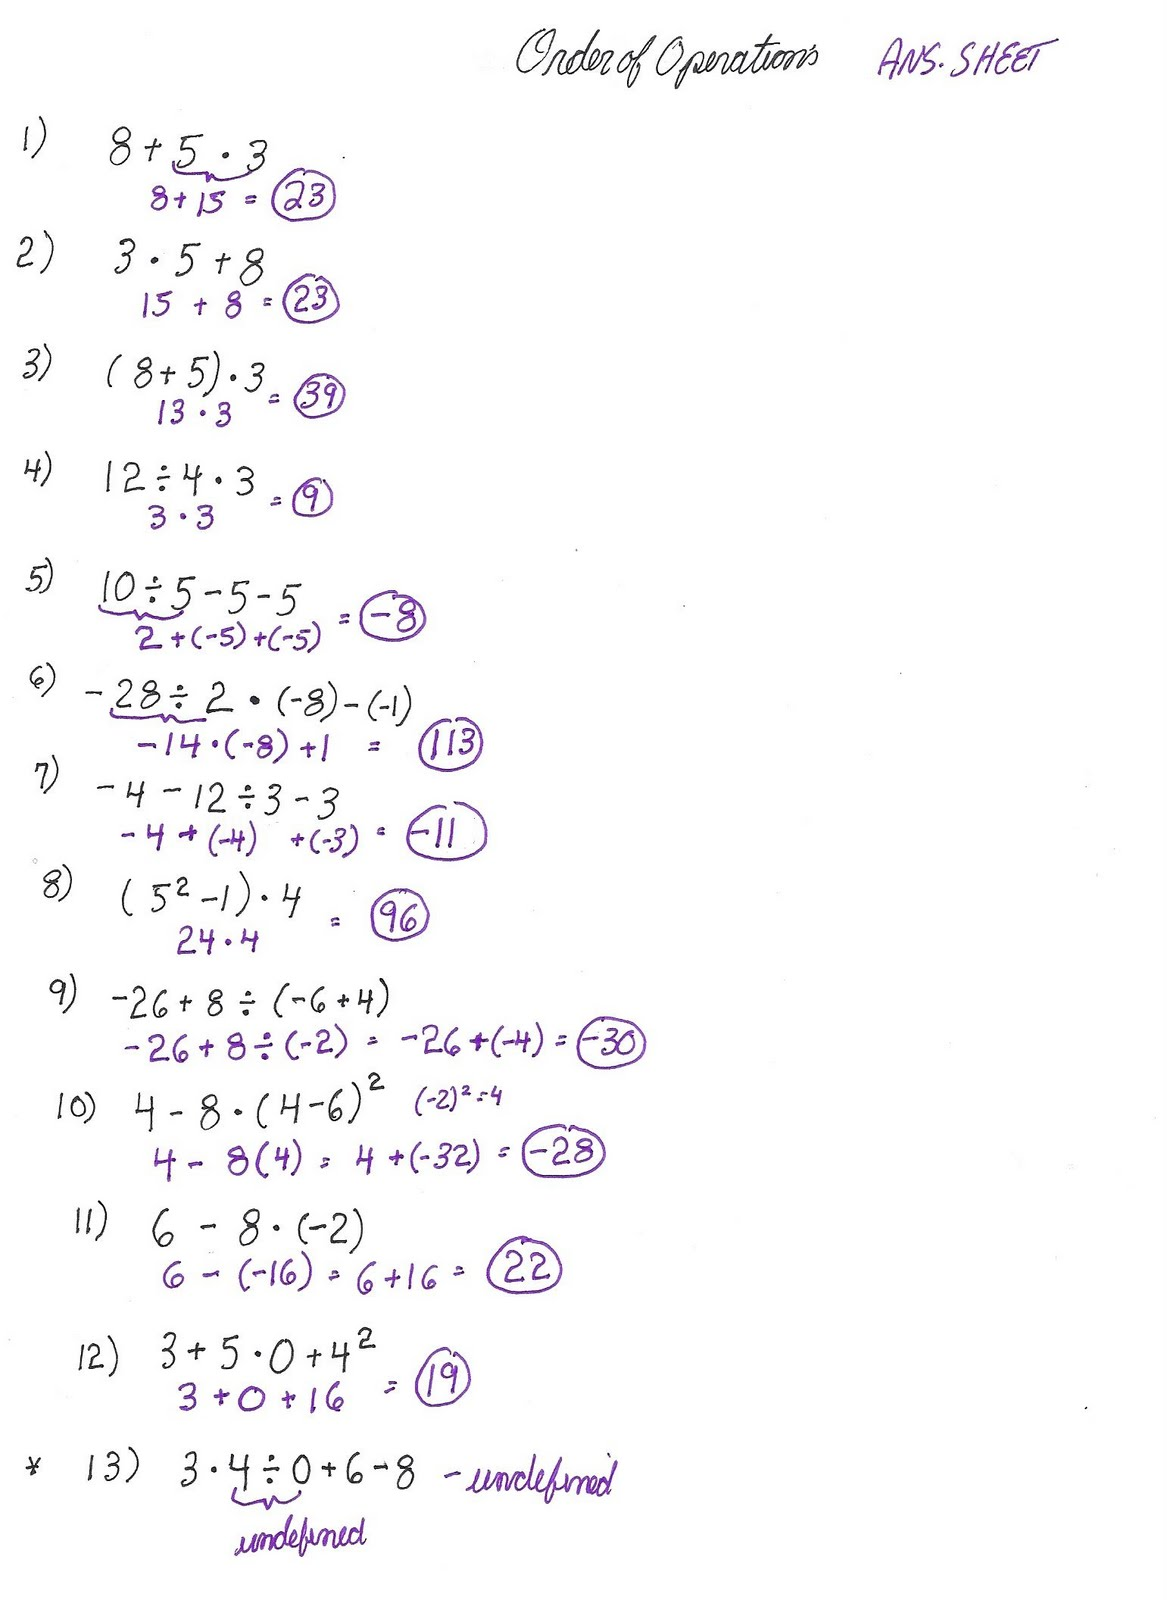 math worksheet : cobb adult ed math order of operations worksheet solutions : Order Of Operations Math Worksheets